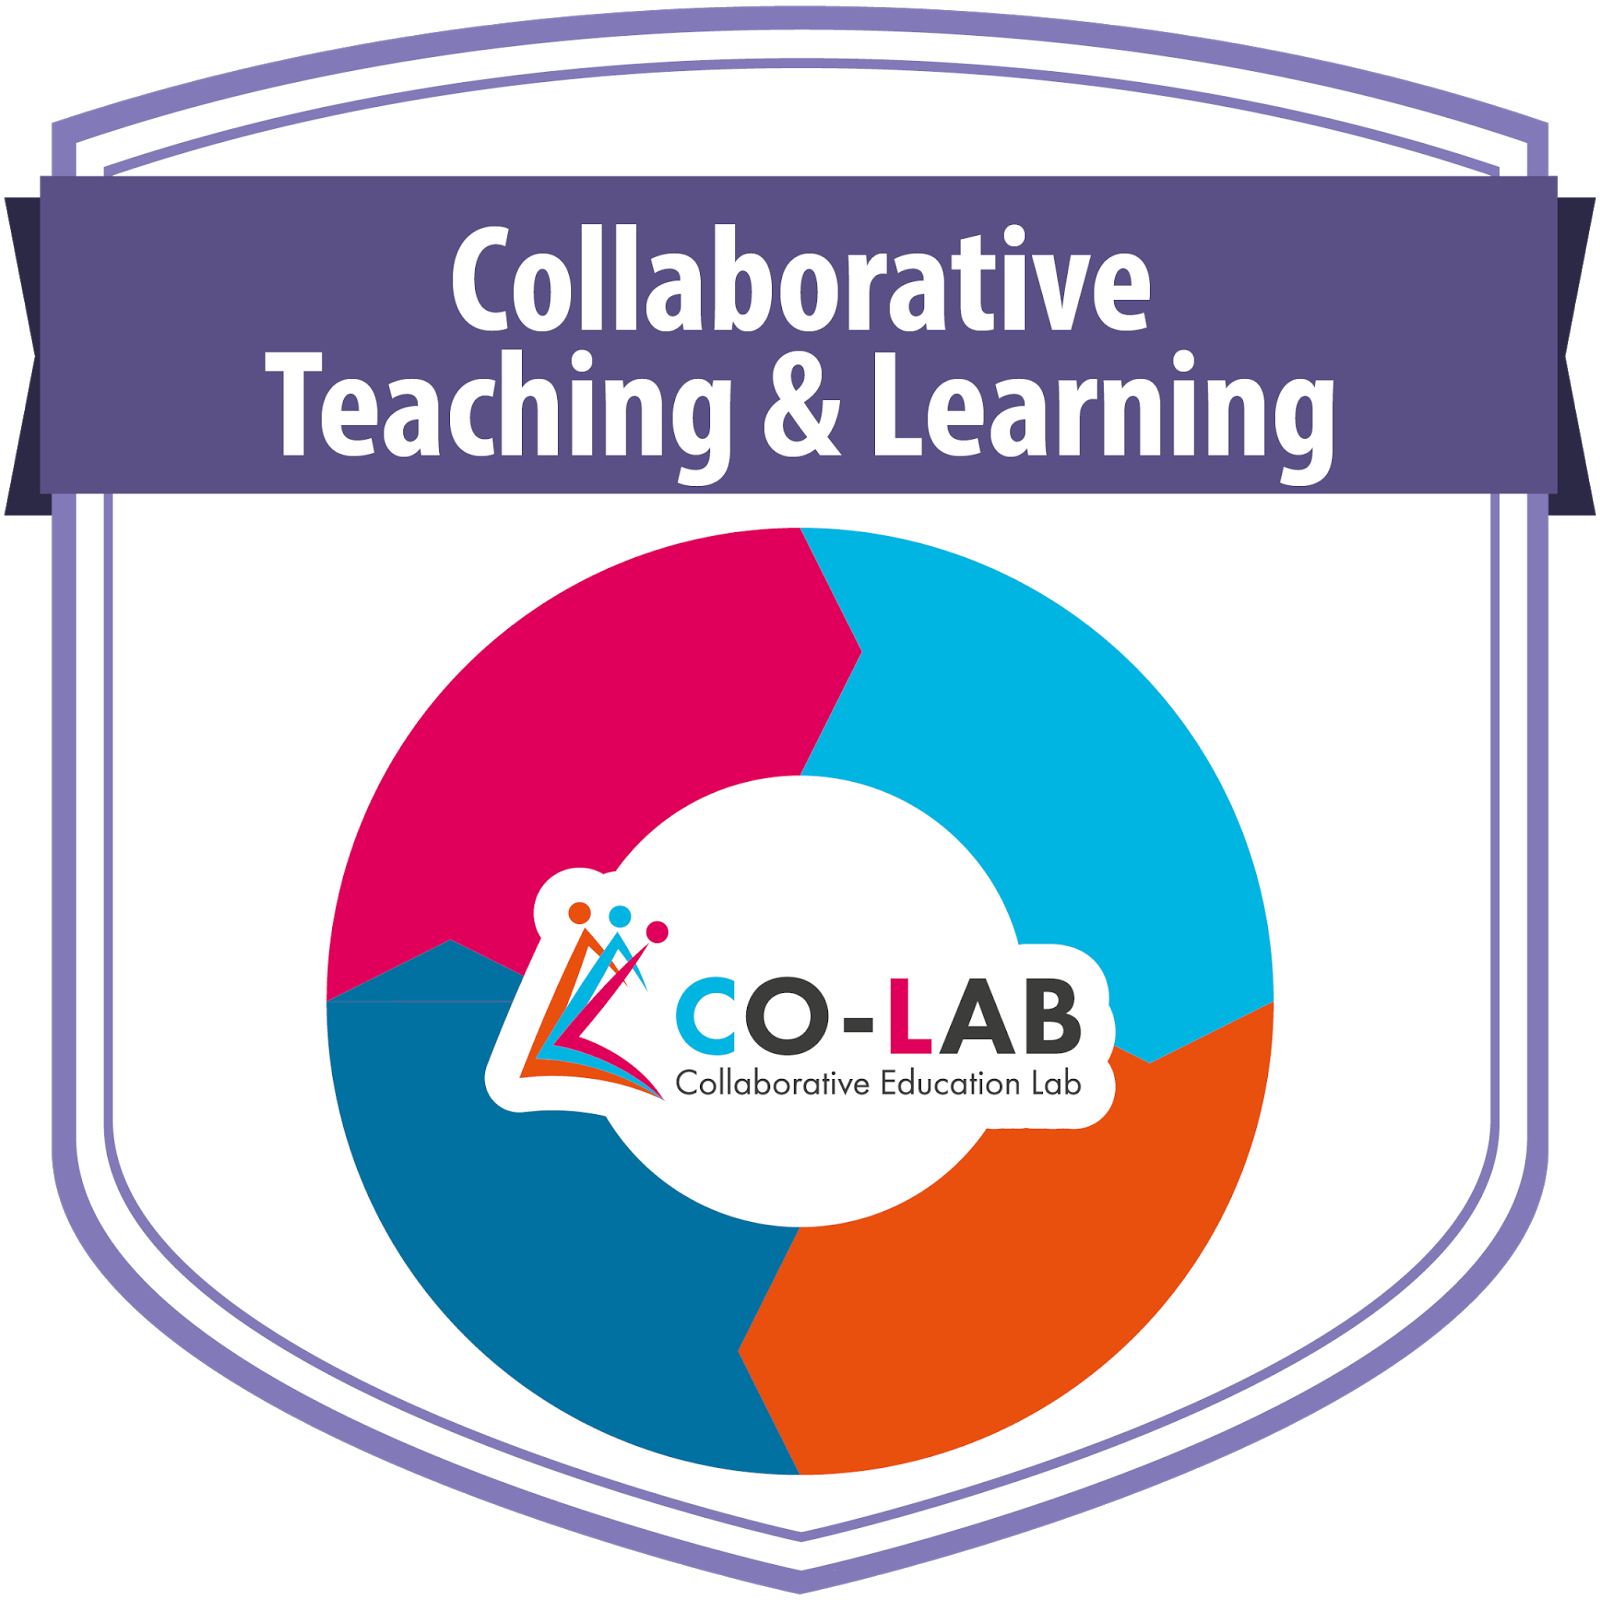 Collaborative Teaching ~ Discussing about education collaborative teaching and